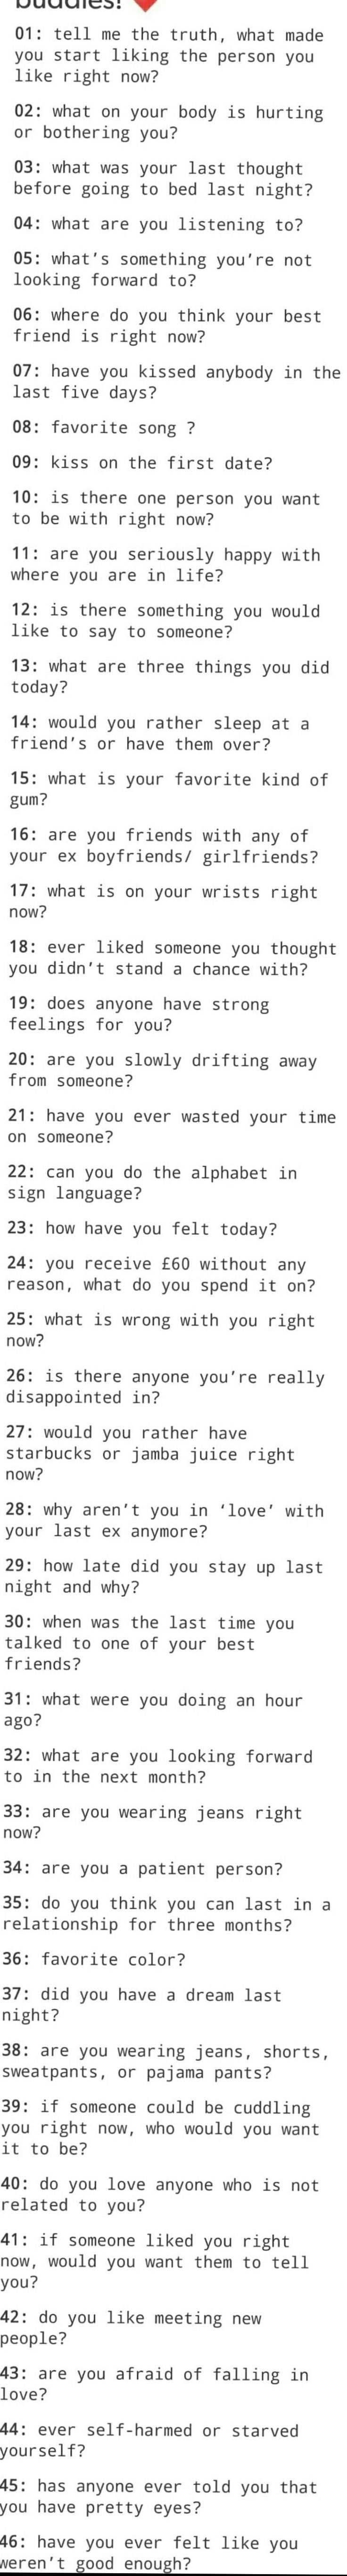 46 things to ask in a conversation starter, question